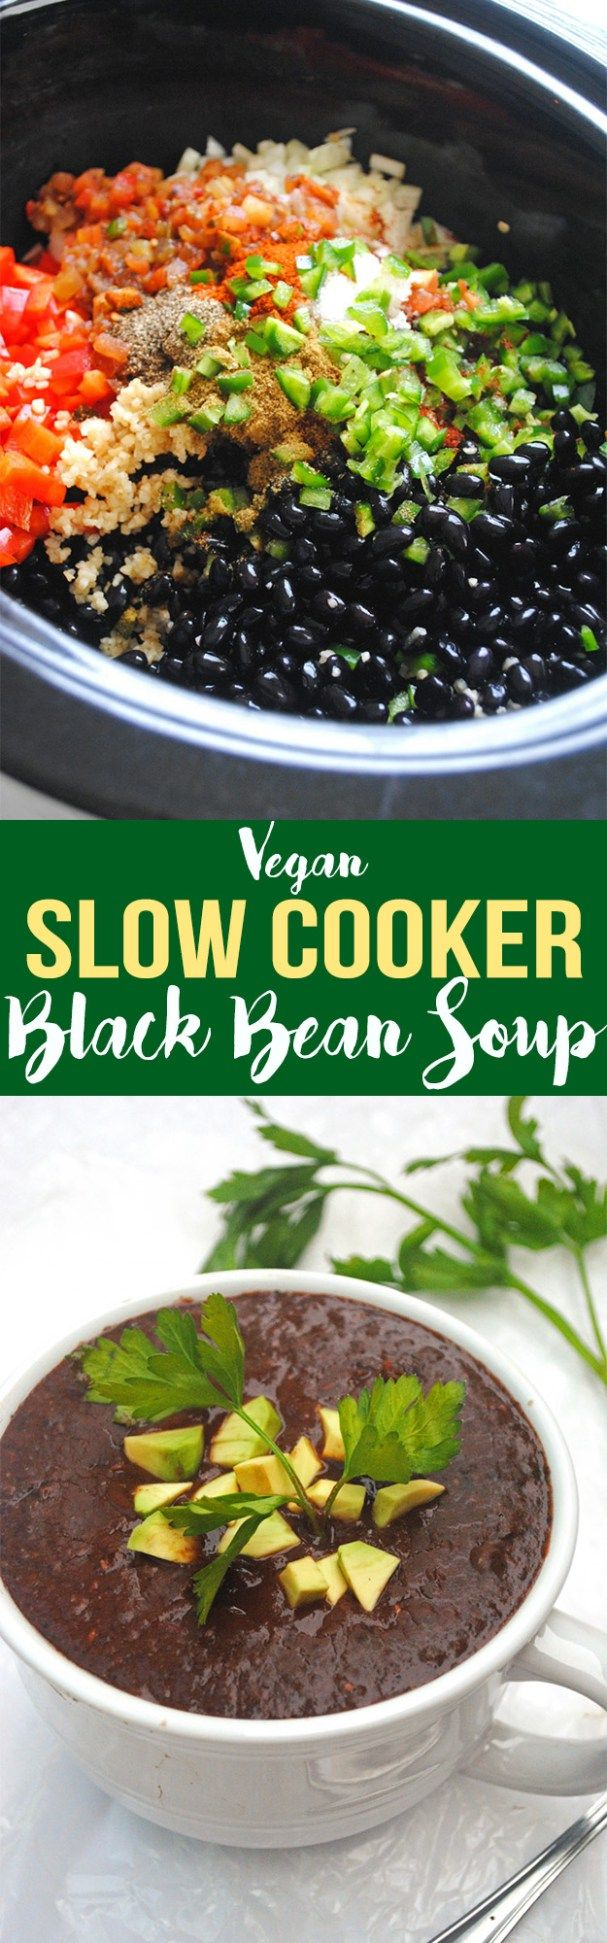 Requiring little prep, this Slow Cooker Black Bean Soup is perfect for an easy weeknight dinner! It's vegan, gluten-free, and full of plant-based protein.